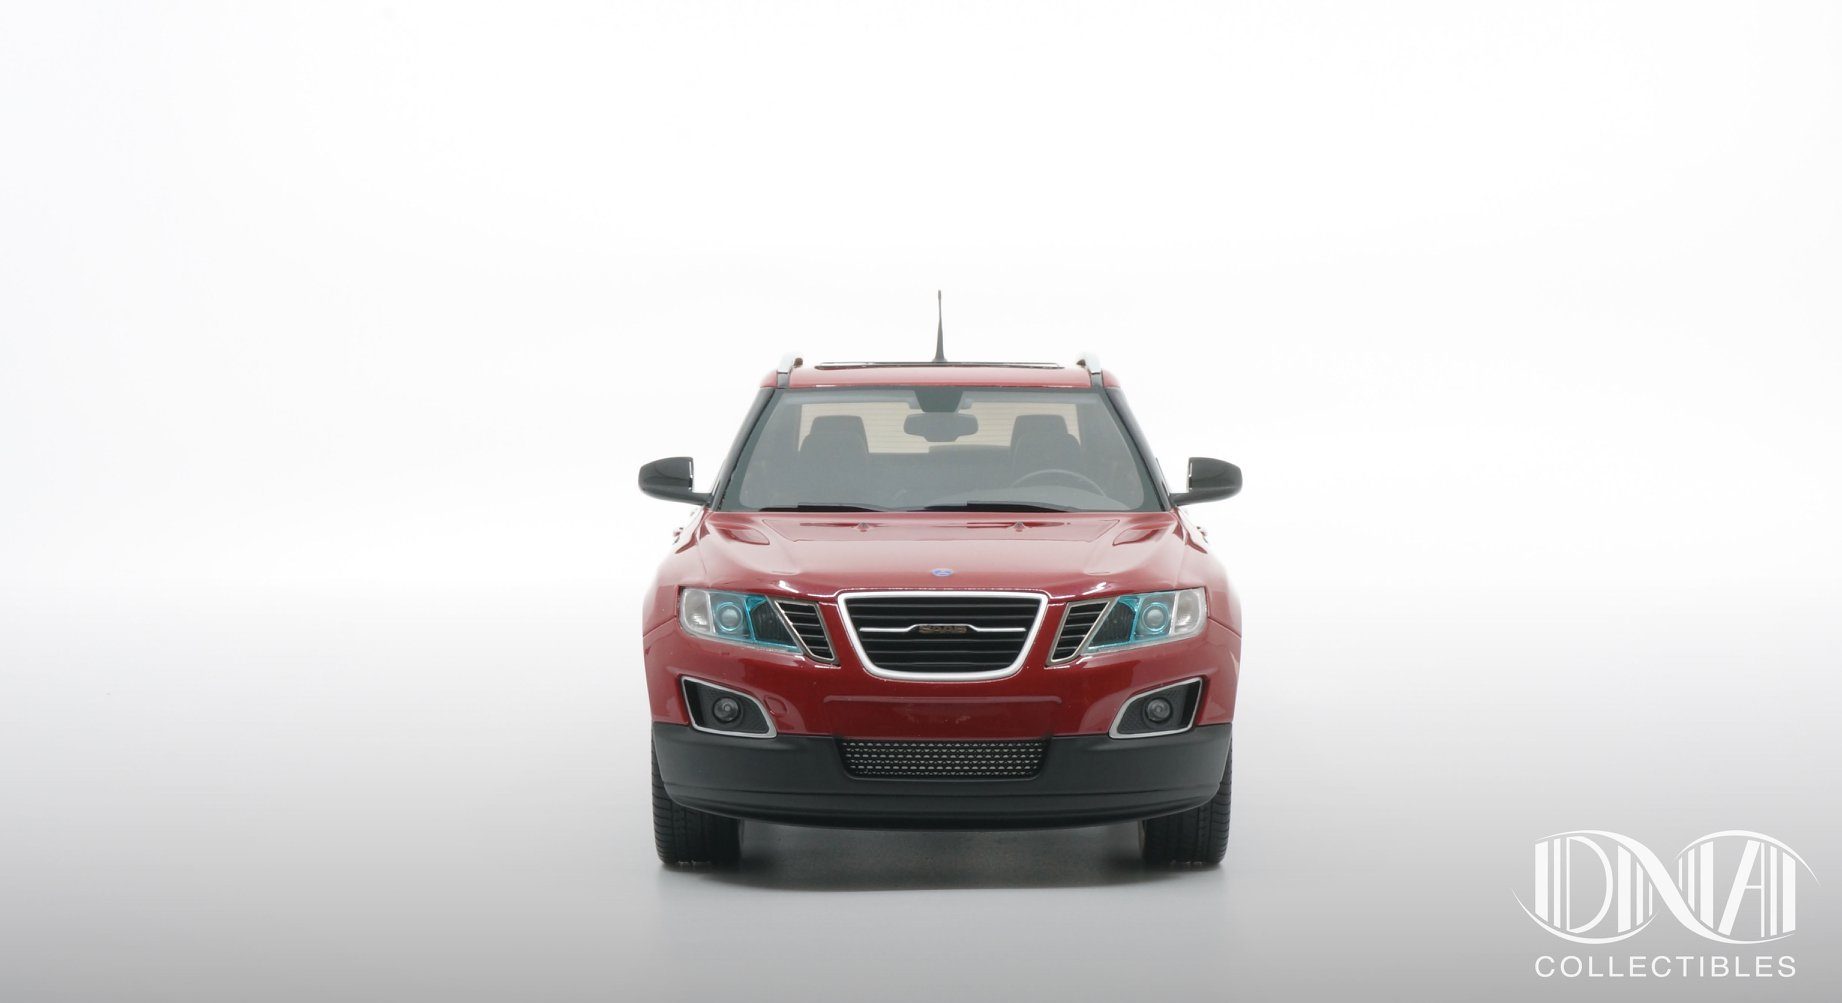 saab-9-4x-dna-collectiles-dna000032-suv